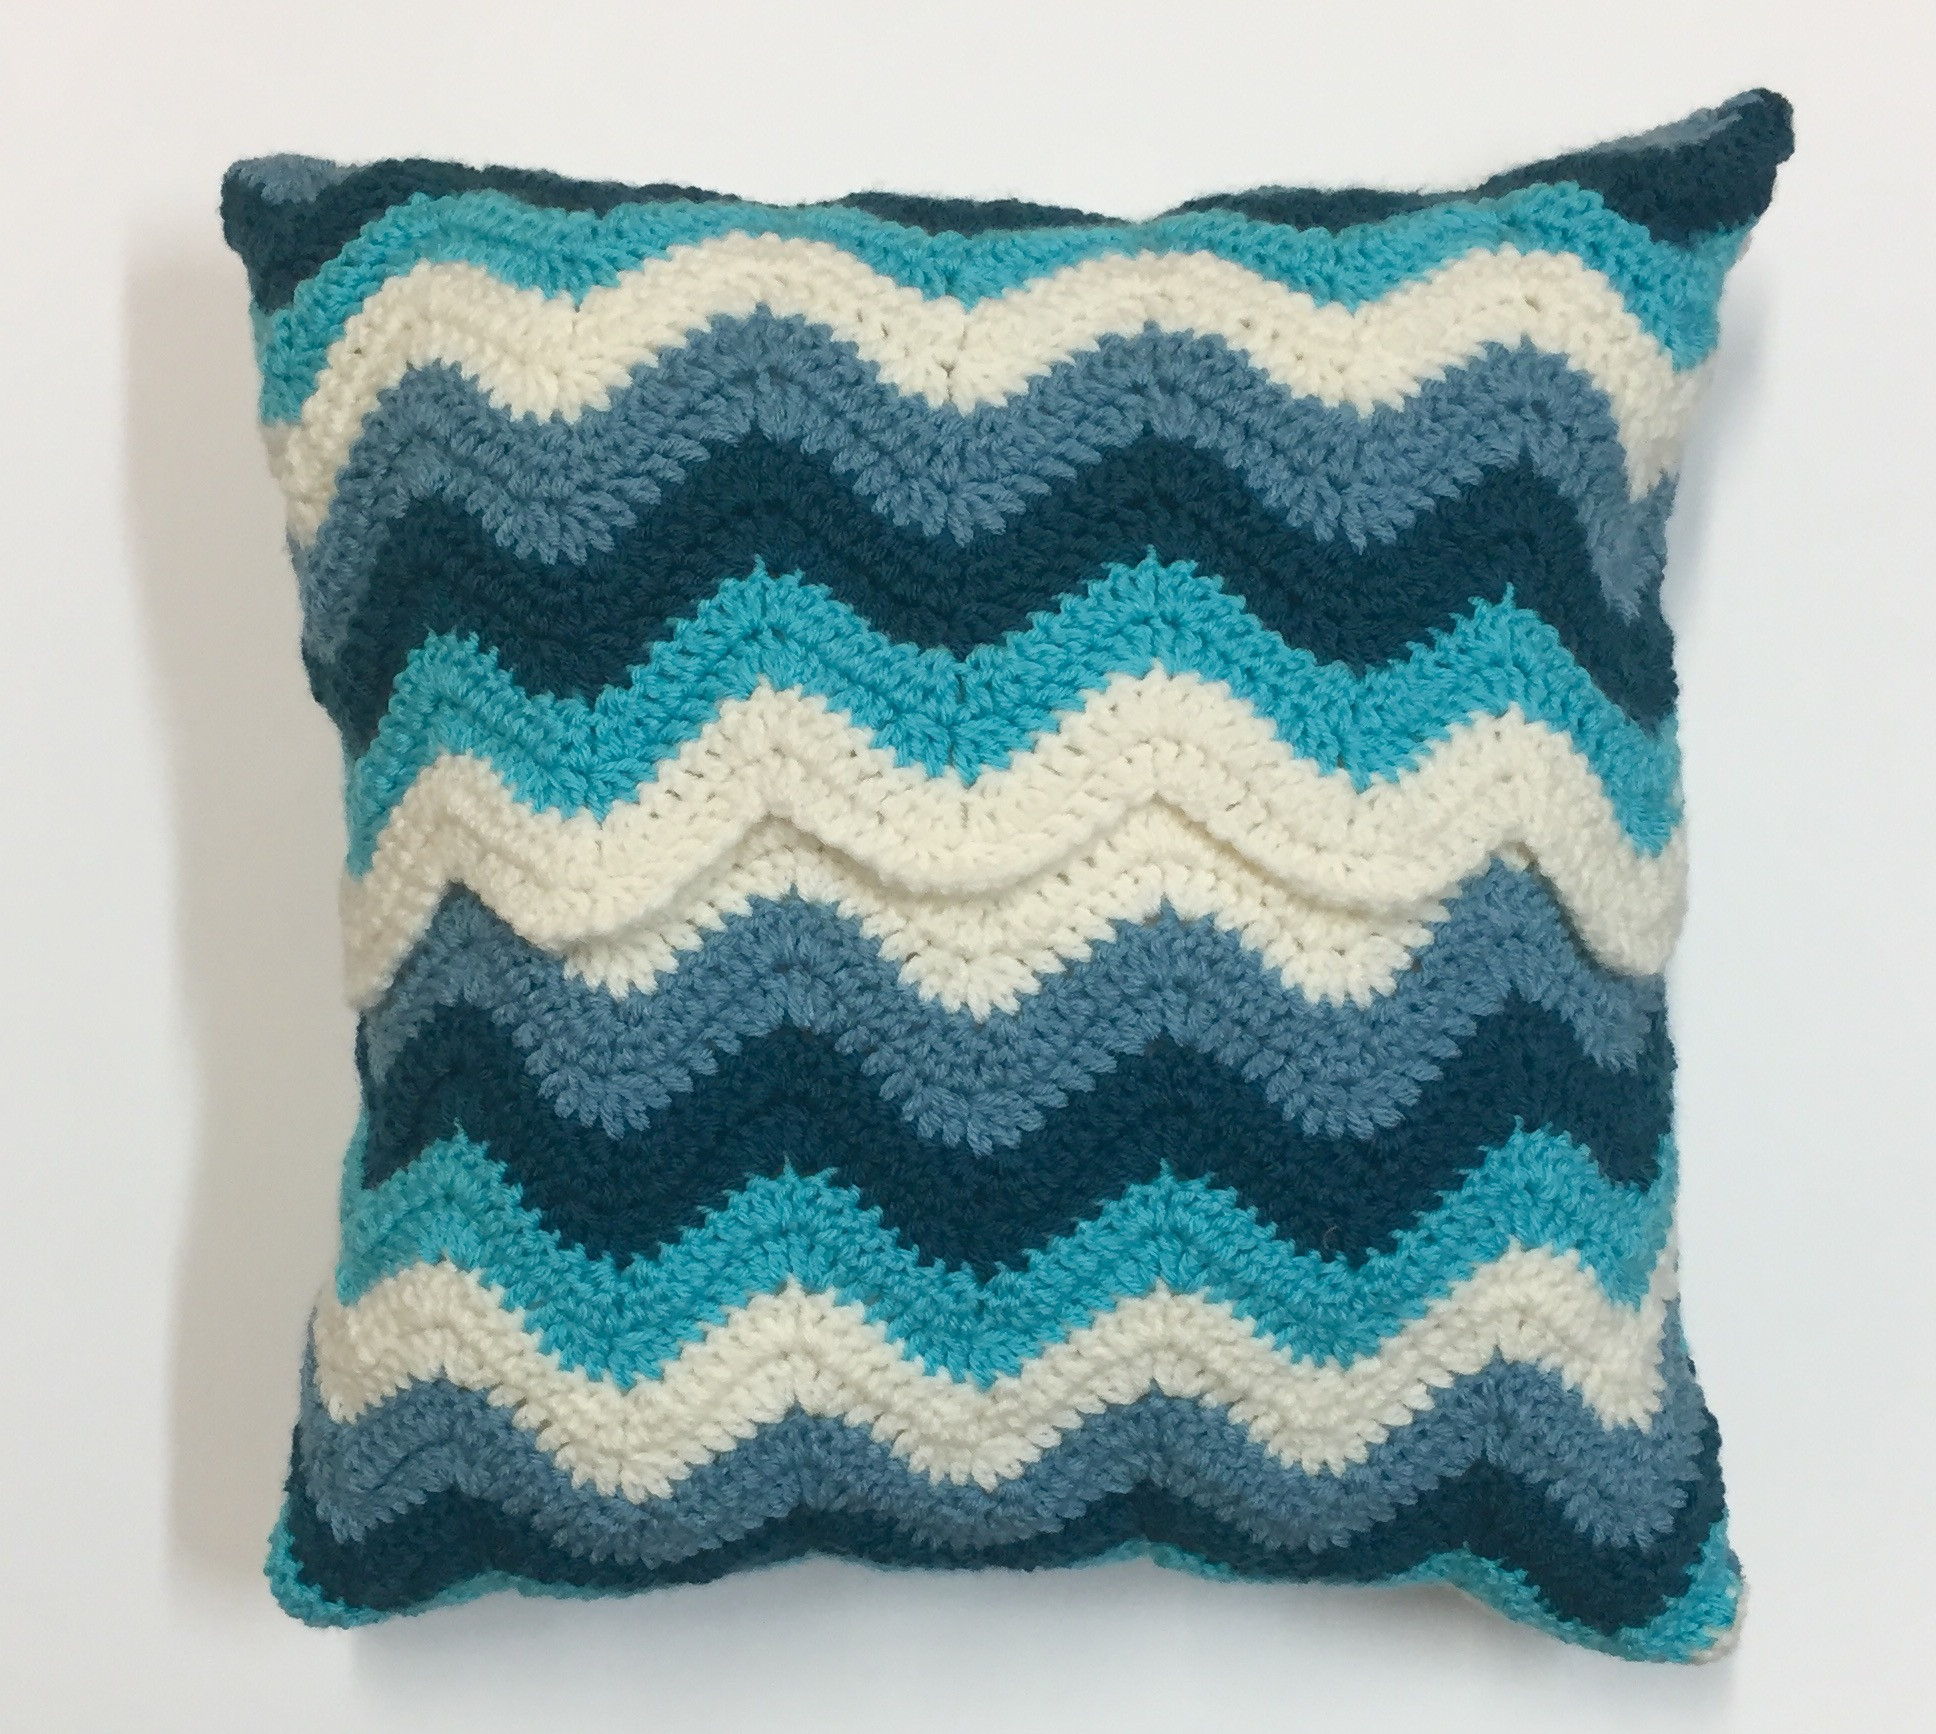 Crochet Pillow Cover Pattern Unique Crochet Patterns Chevron Pillow Cover Of Lovely 47 Images Crochet Pillow Cover Pattern